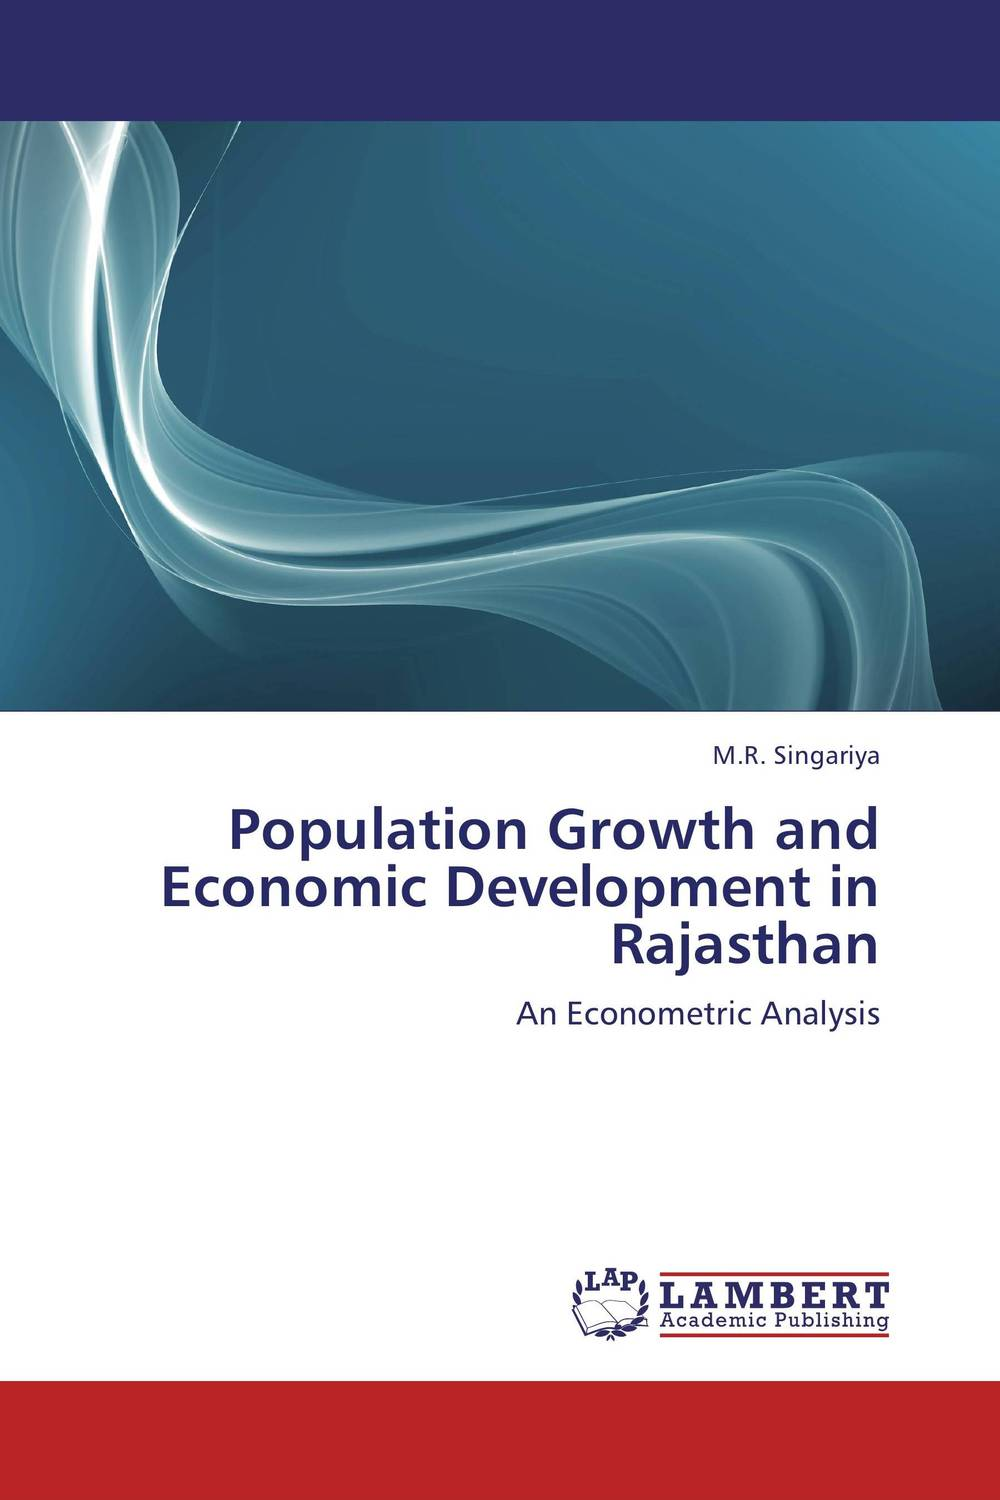 Population Growth and Economic Development in Rajasthan wu xiaoqiu chinese securities companies an analysis of economic growth financial structure transformation and future development